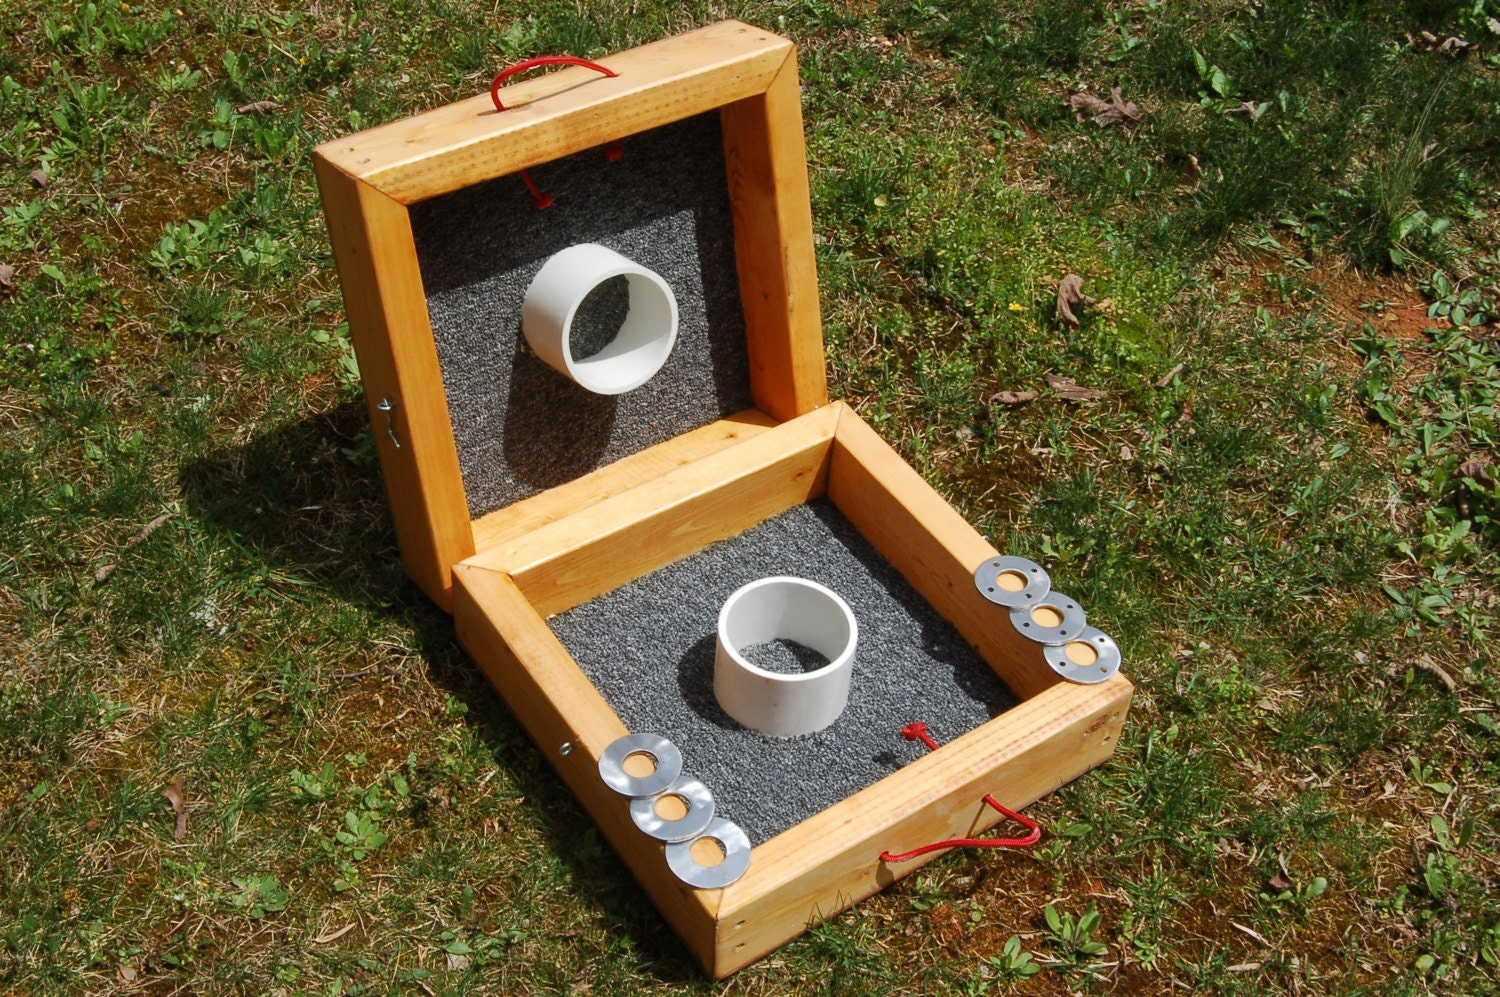 custom built washer toss game set